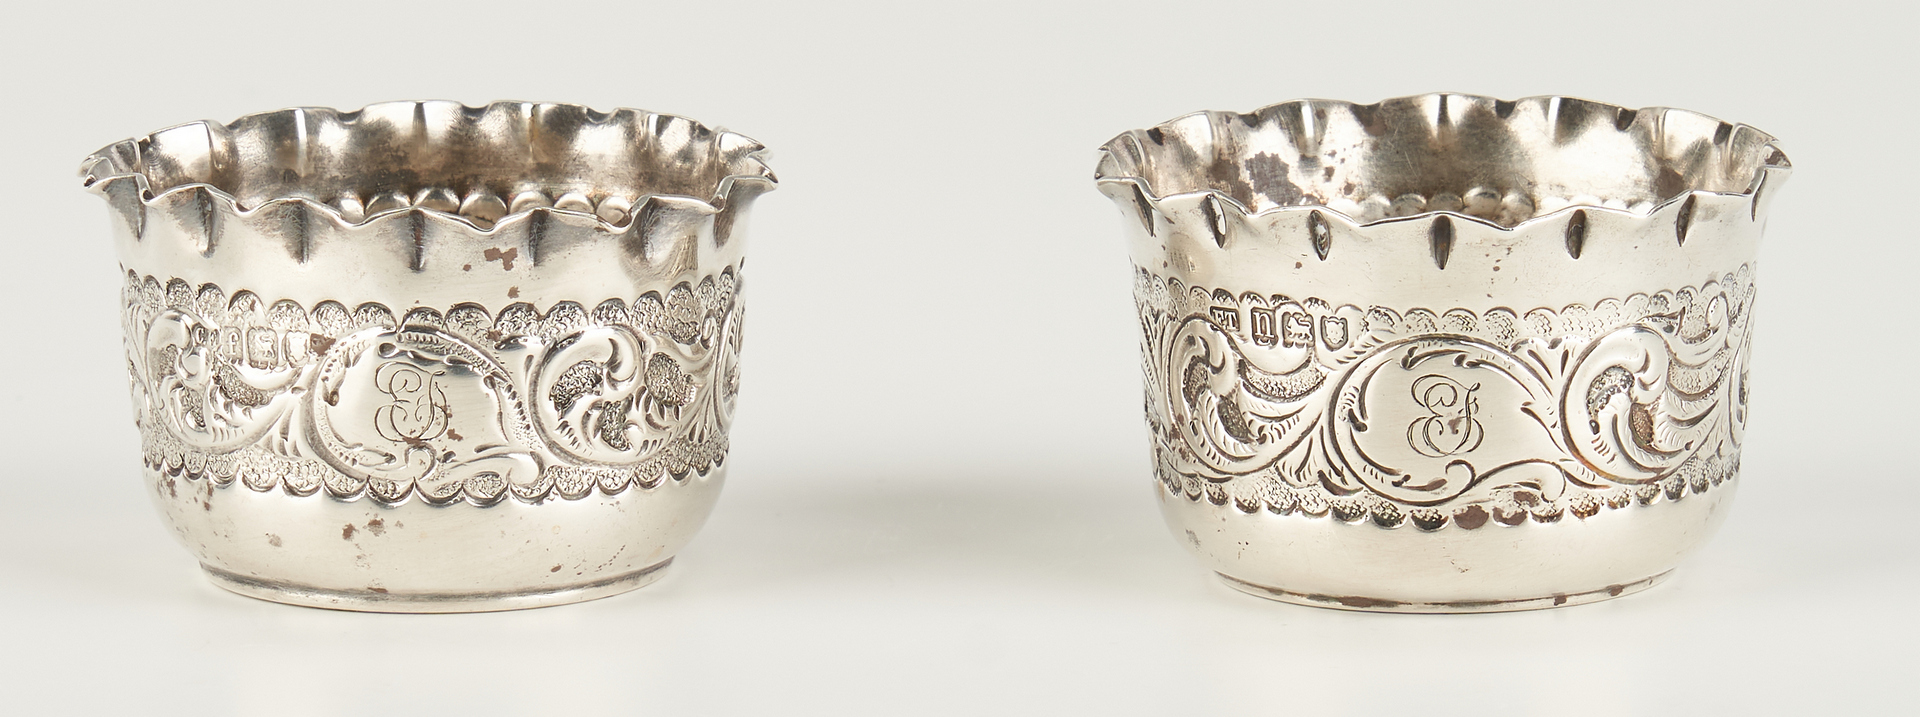 Lot 278: 4 English Sterling Silver Items, incl. Candlesticks